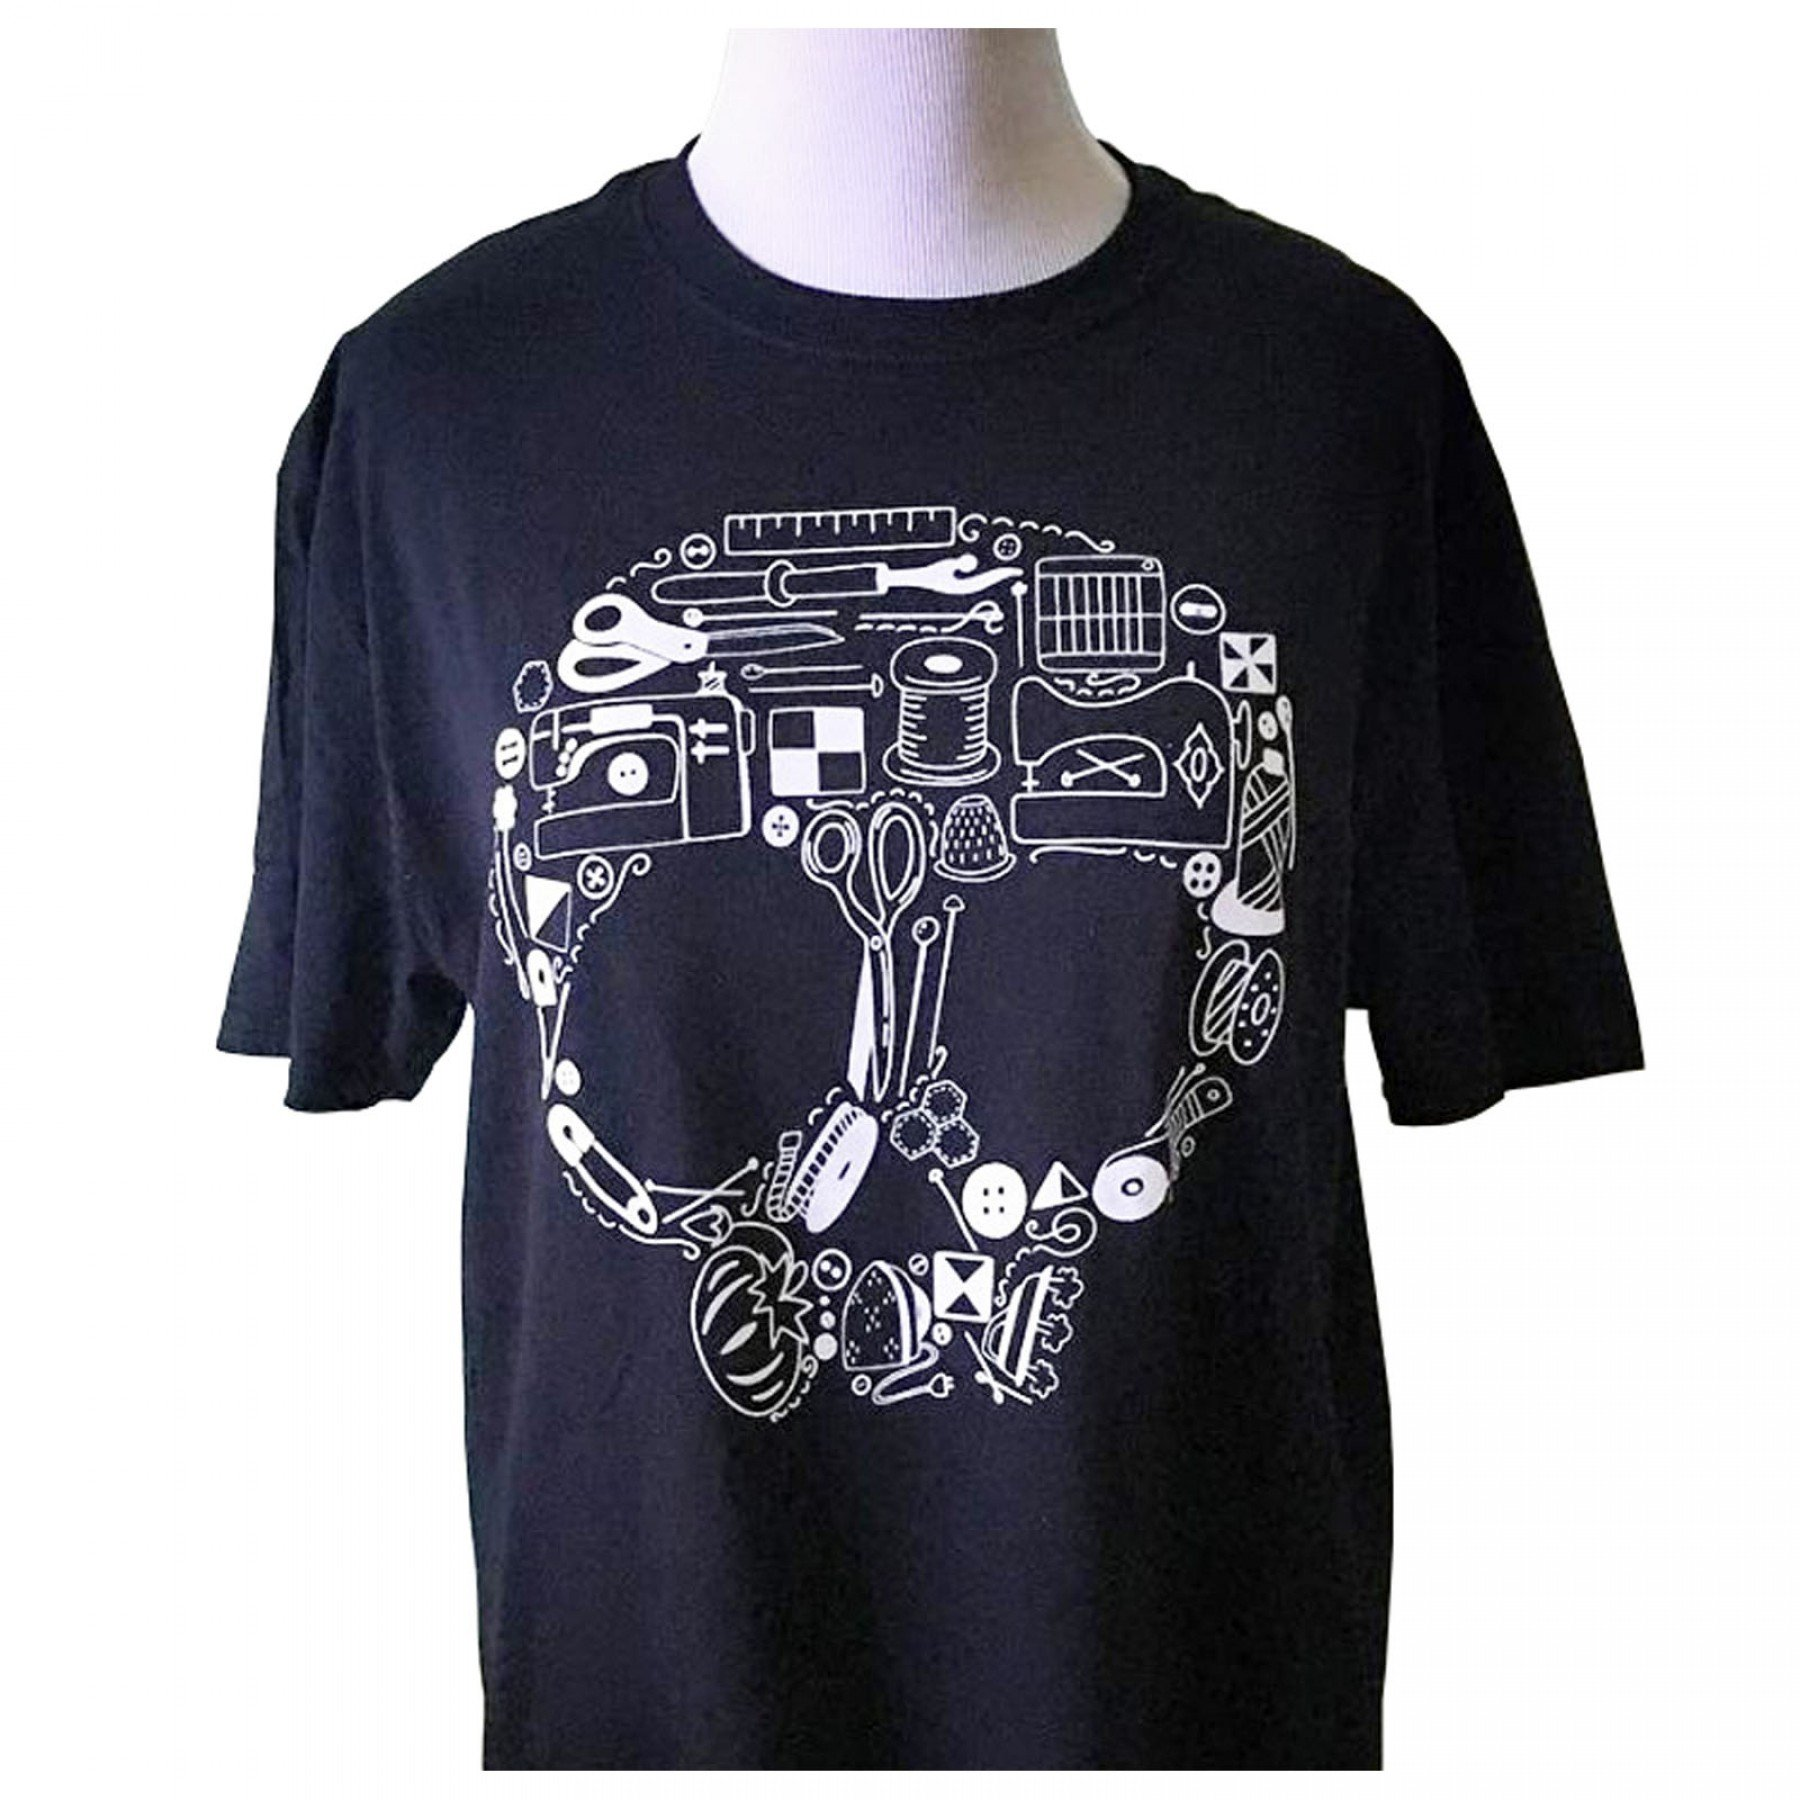 Sewing Skull (Made of Tools) T-Shirt | EE Schenck Co.